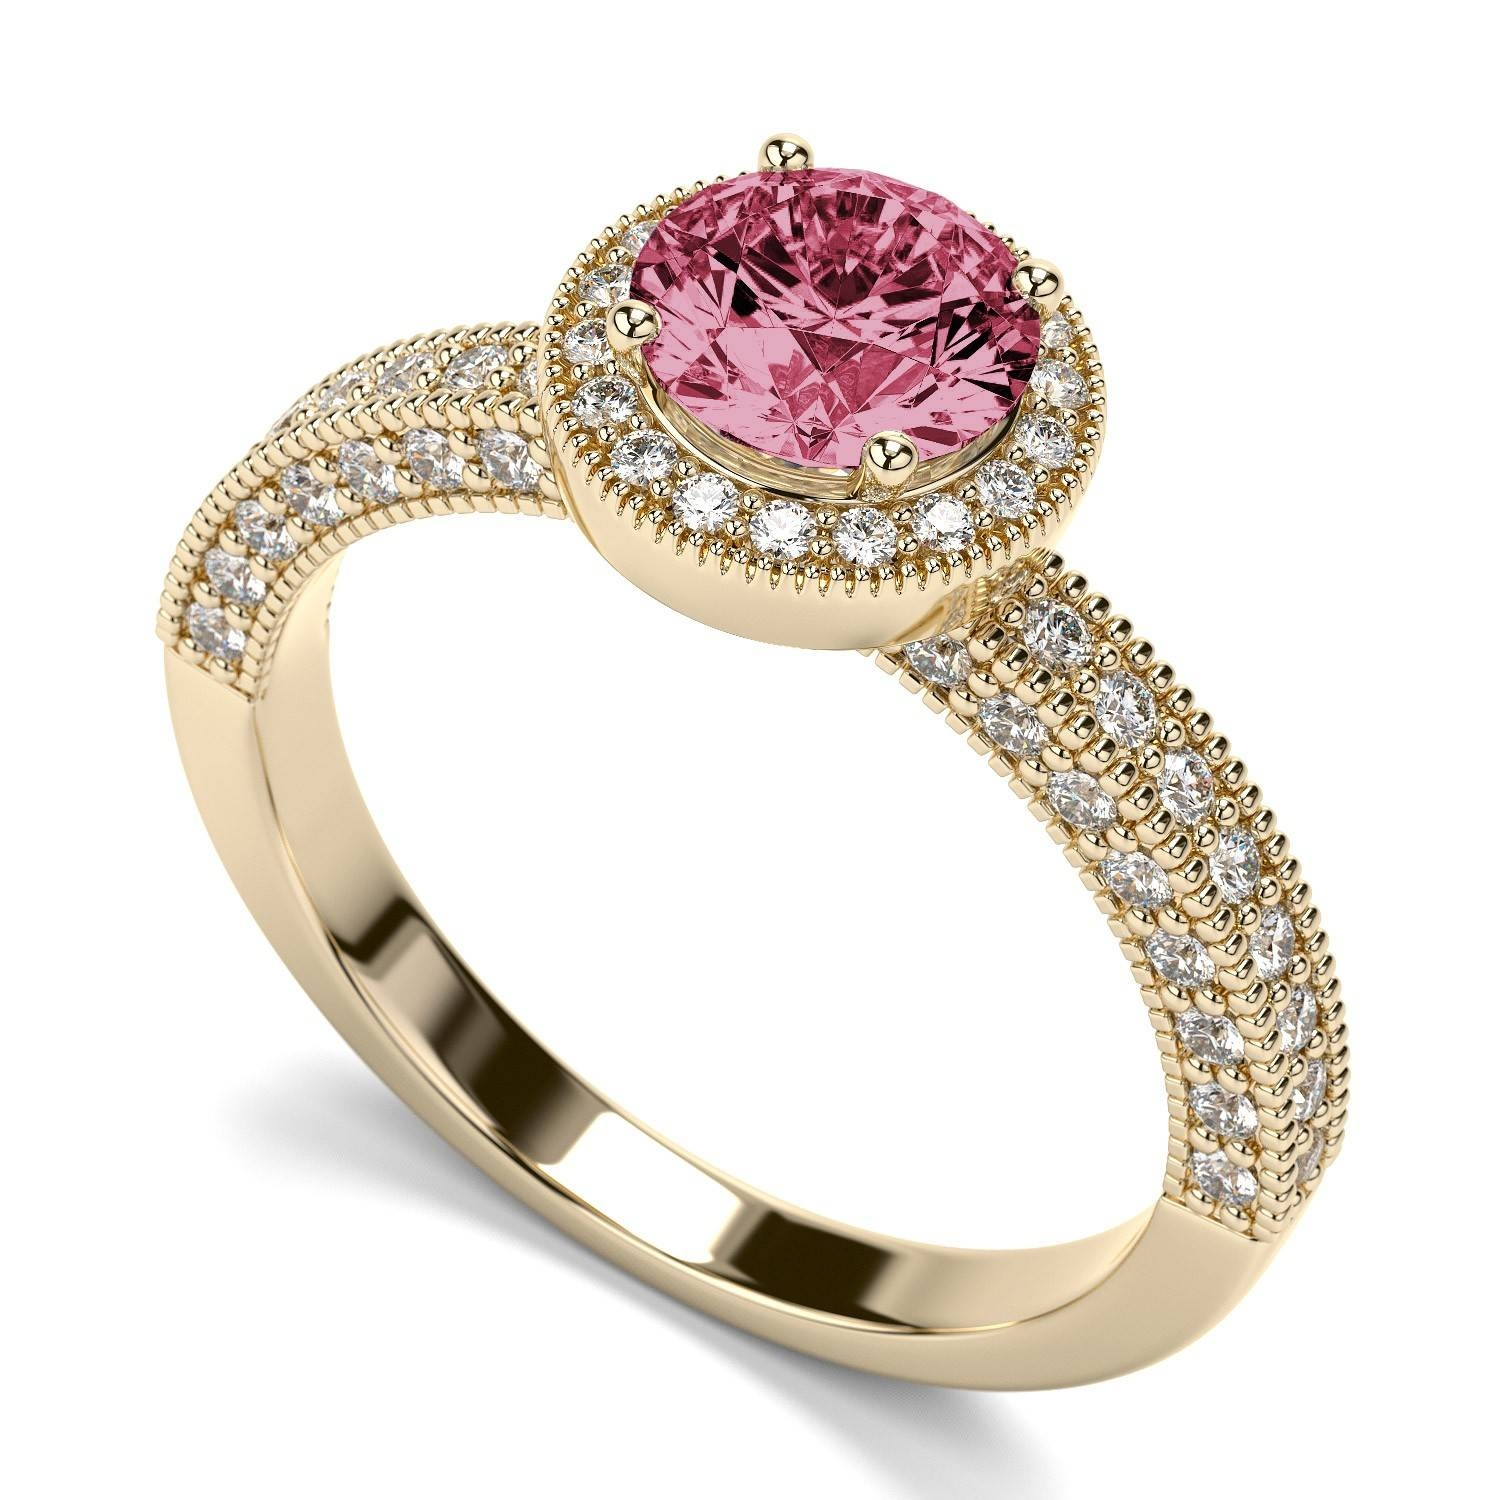 Victorian Vintage Round Pink Sapphire Engagement Ring In 14K Inside Pink Sapphire Engagement Rings (Gallery 2 of 15)